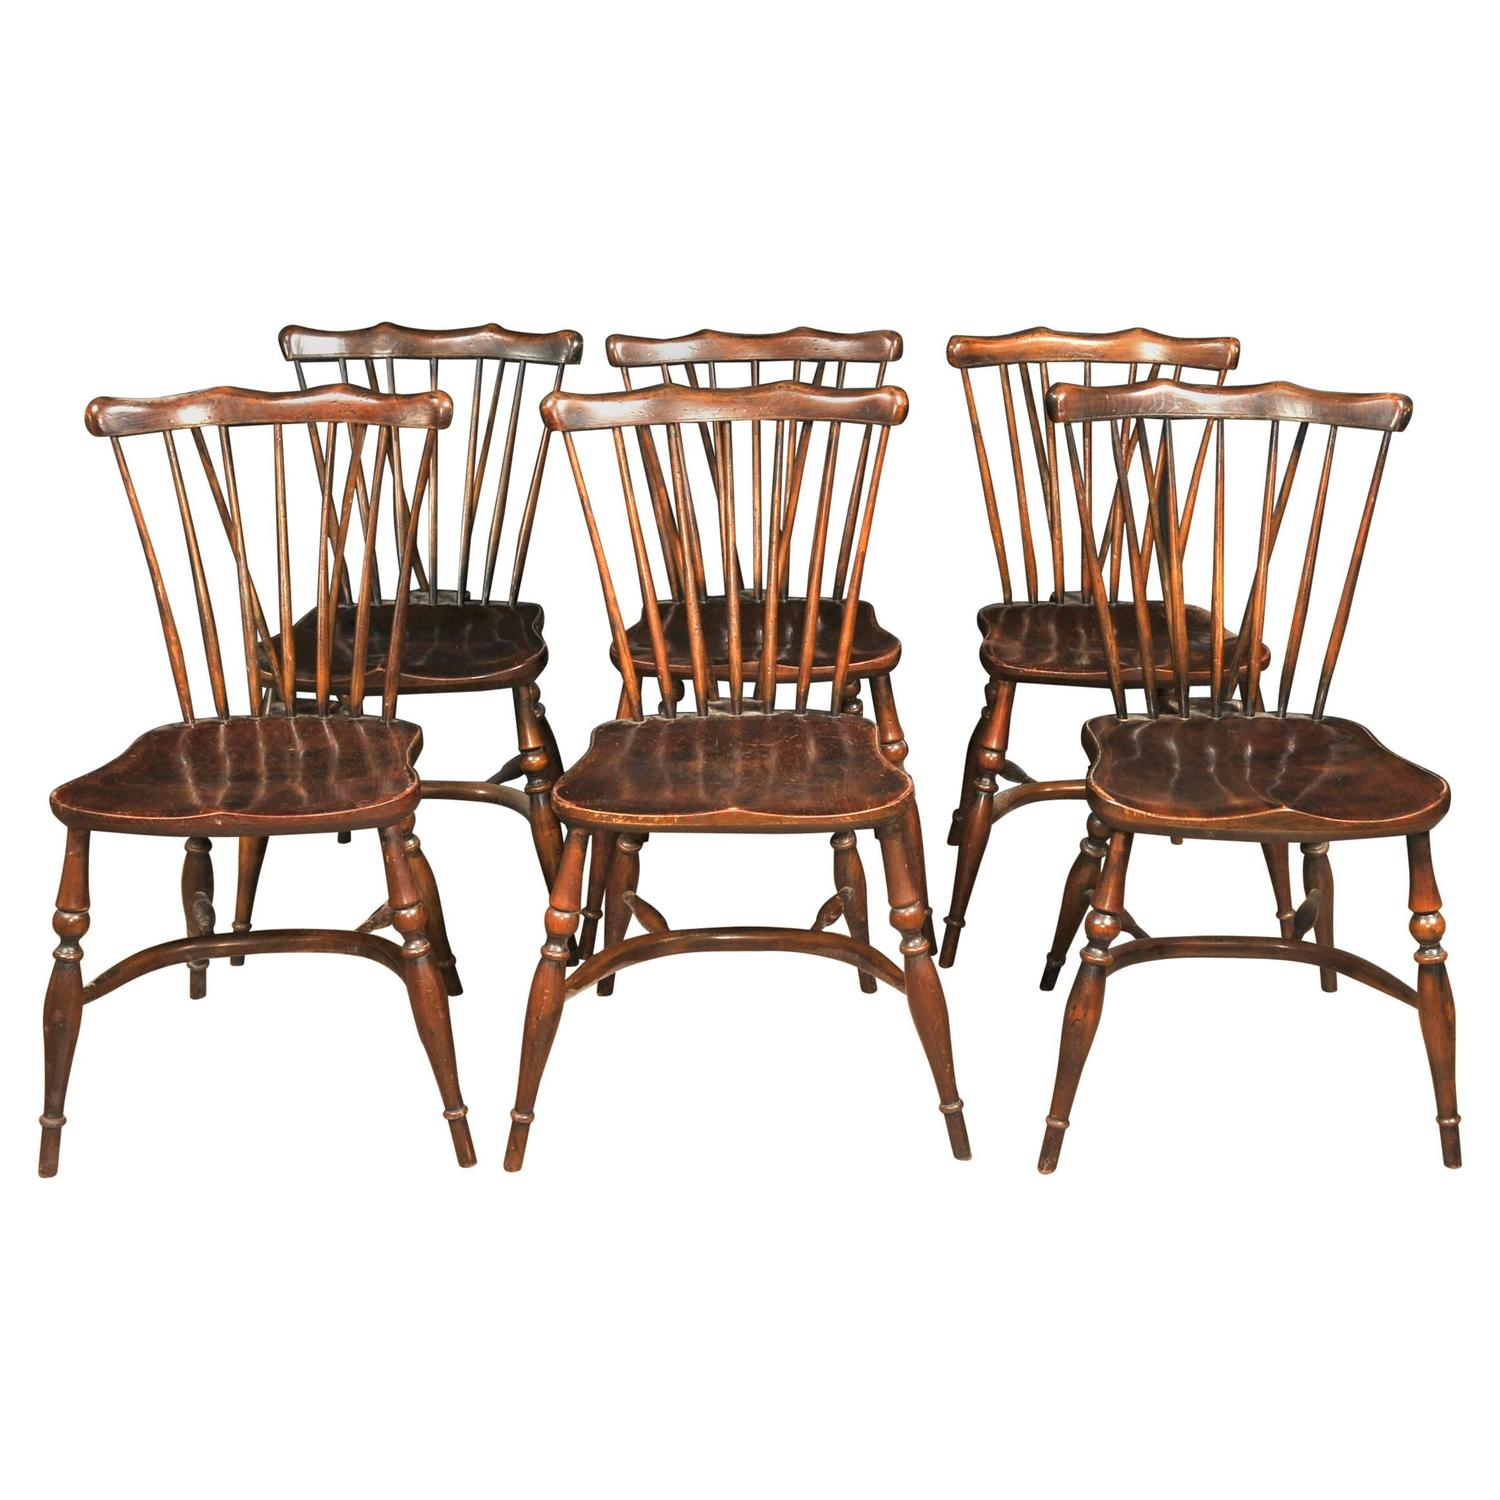 Vintage Kitchen Chairs For Sale: Set Of Eight Antique Oak Windsor Chairs 1920 Kitchen